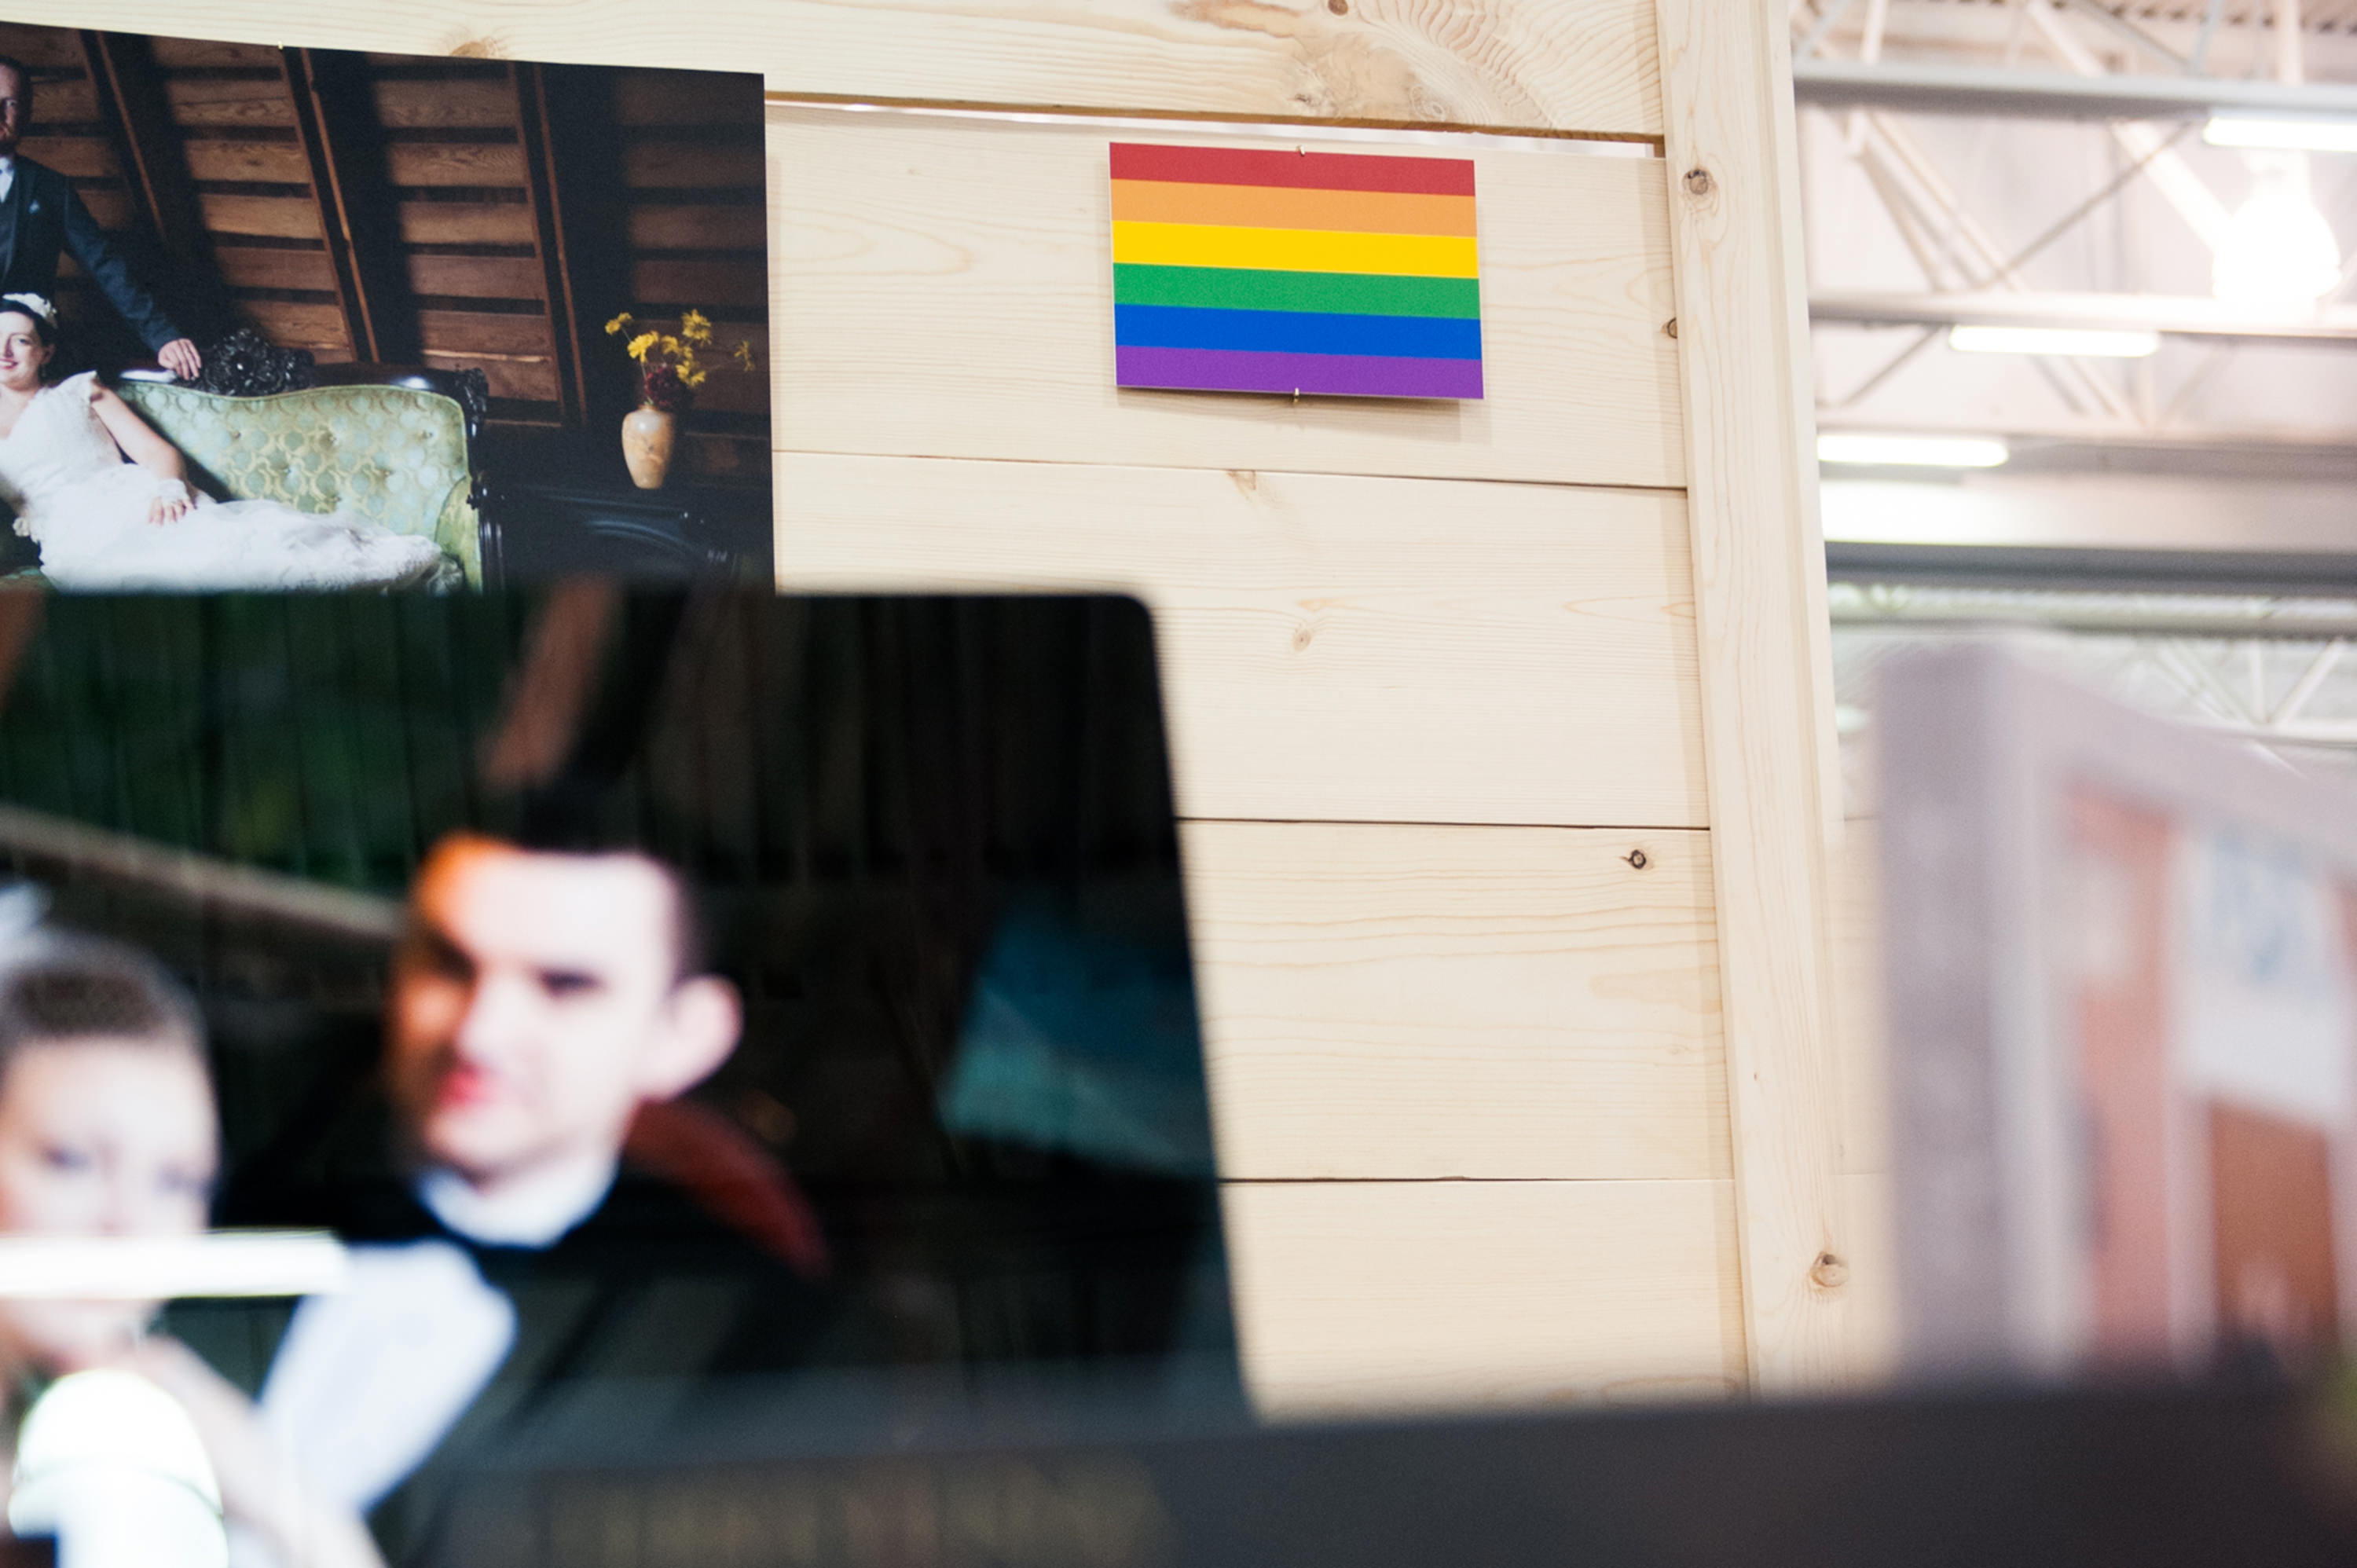 Firelily Photography Madison, WI 2017 Winter Bridal Show Booth | Same-Sex Wedding Photography: Rainbow flag: Love is love is love is love